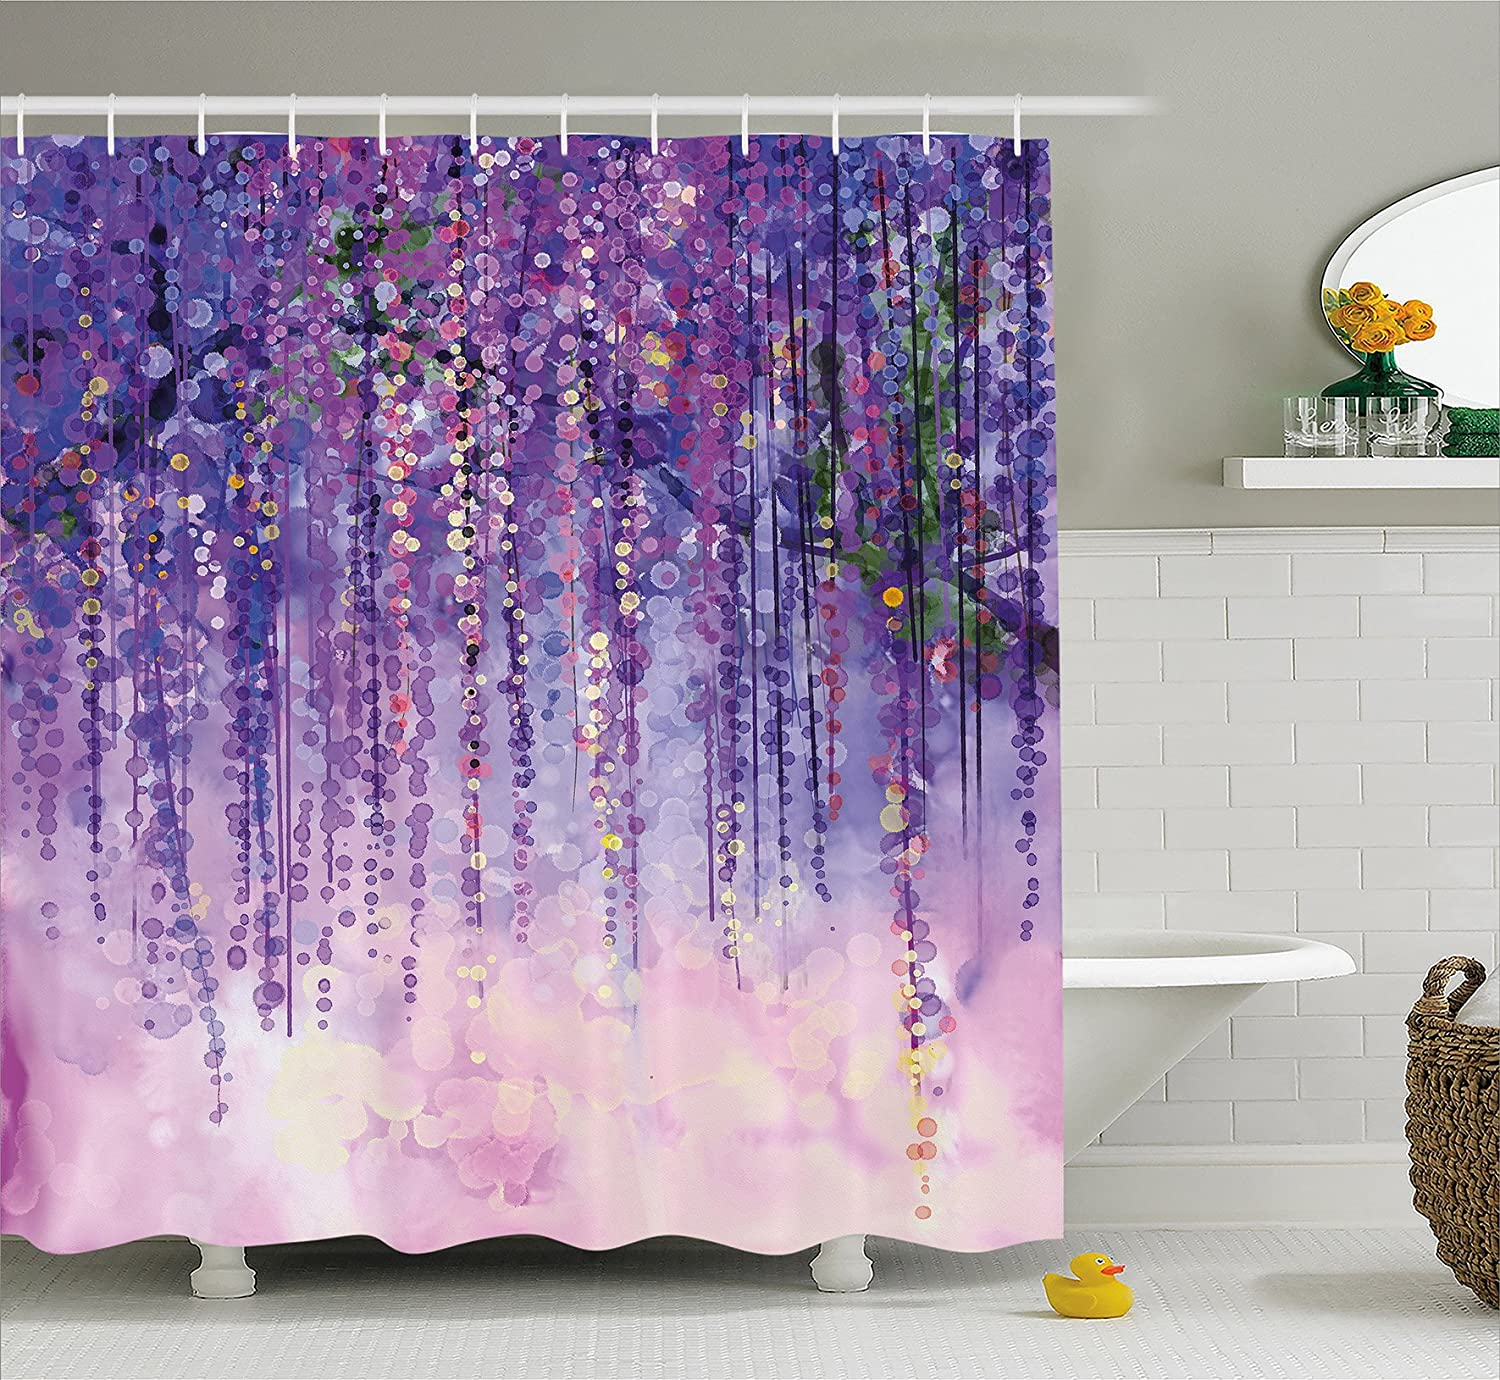 Amazon.com: Ambesonne Watercolor Flower Home Decor Shower Curtain by ...